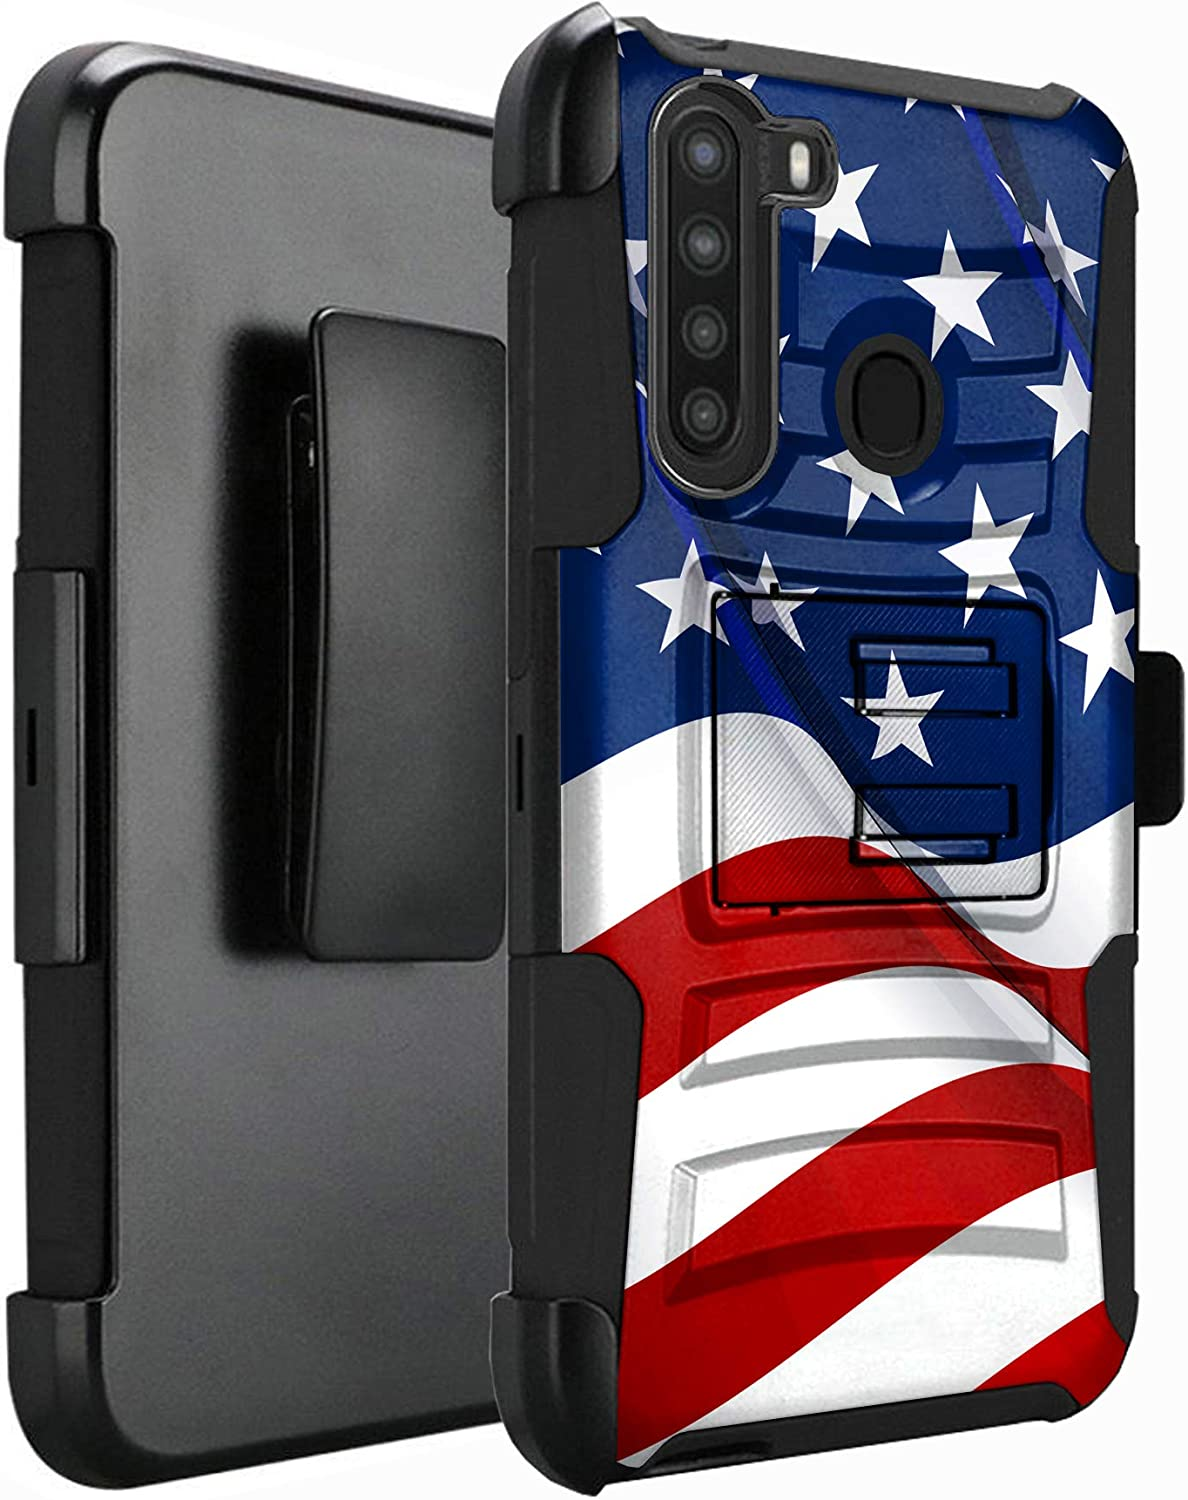 DALUX Hybrid Kickstand Holster Phone Case Compatible with Galaxy A21 (2020) - New Waving Half US Flag